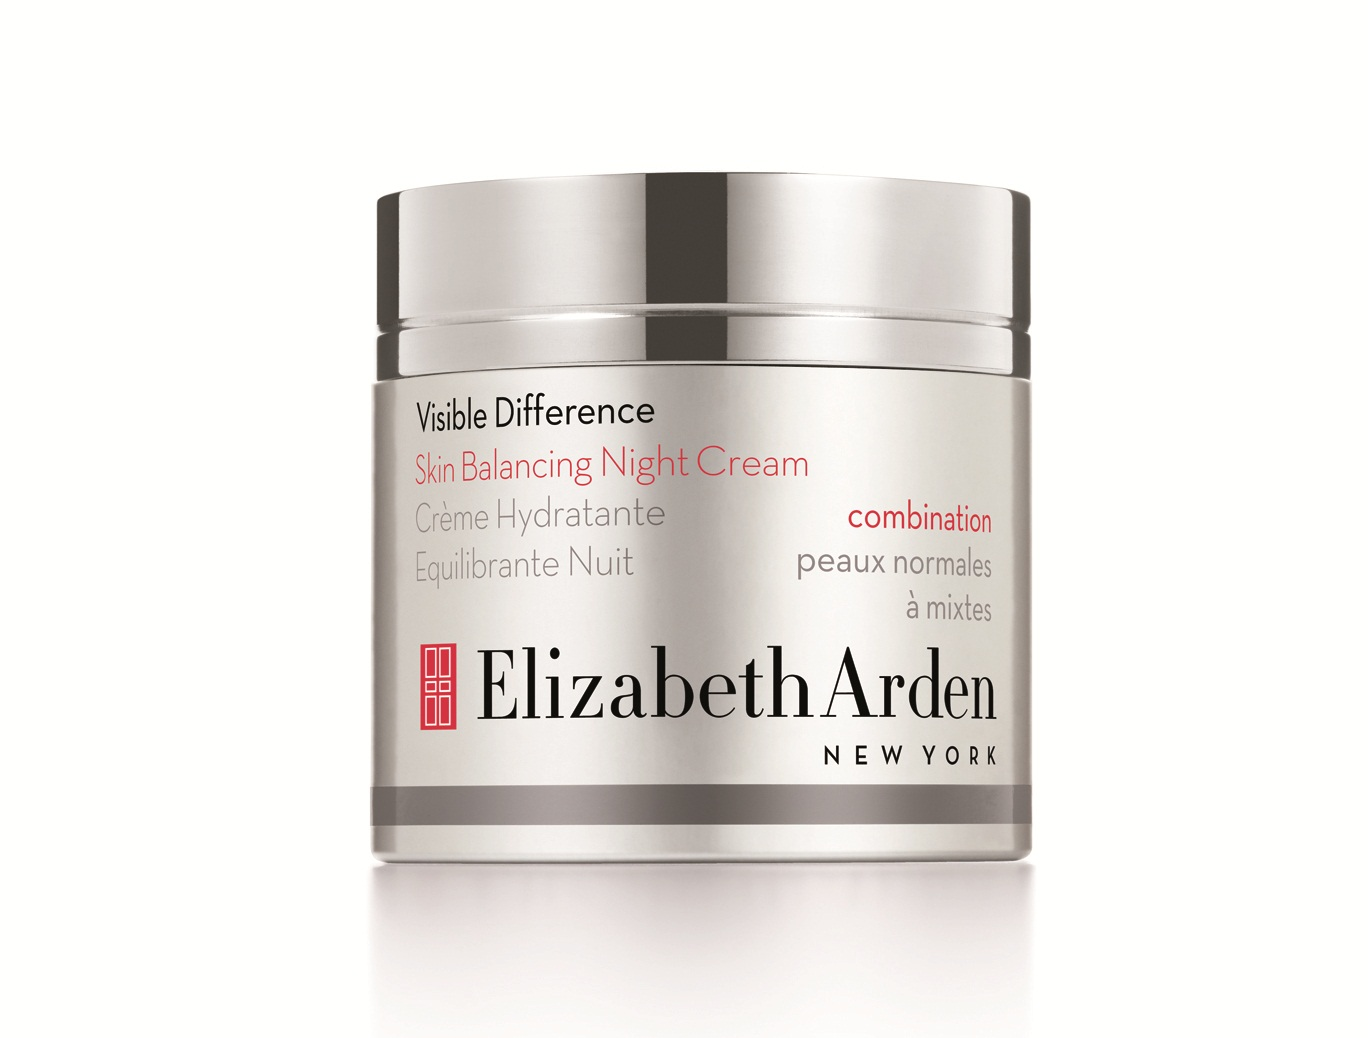 a biography of elizabeth arden From a portfolio of iconic elizabeth arden products that include elizabeth arden skin care, makeup, and fragrances, though it has undergone changes and ownership, elizabeth arden still remains a legacy brand today with products love by skin care enthusiasts, novices, and experts across the globe.